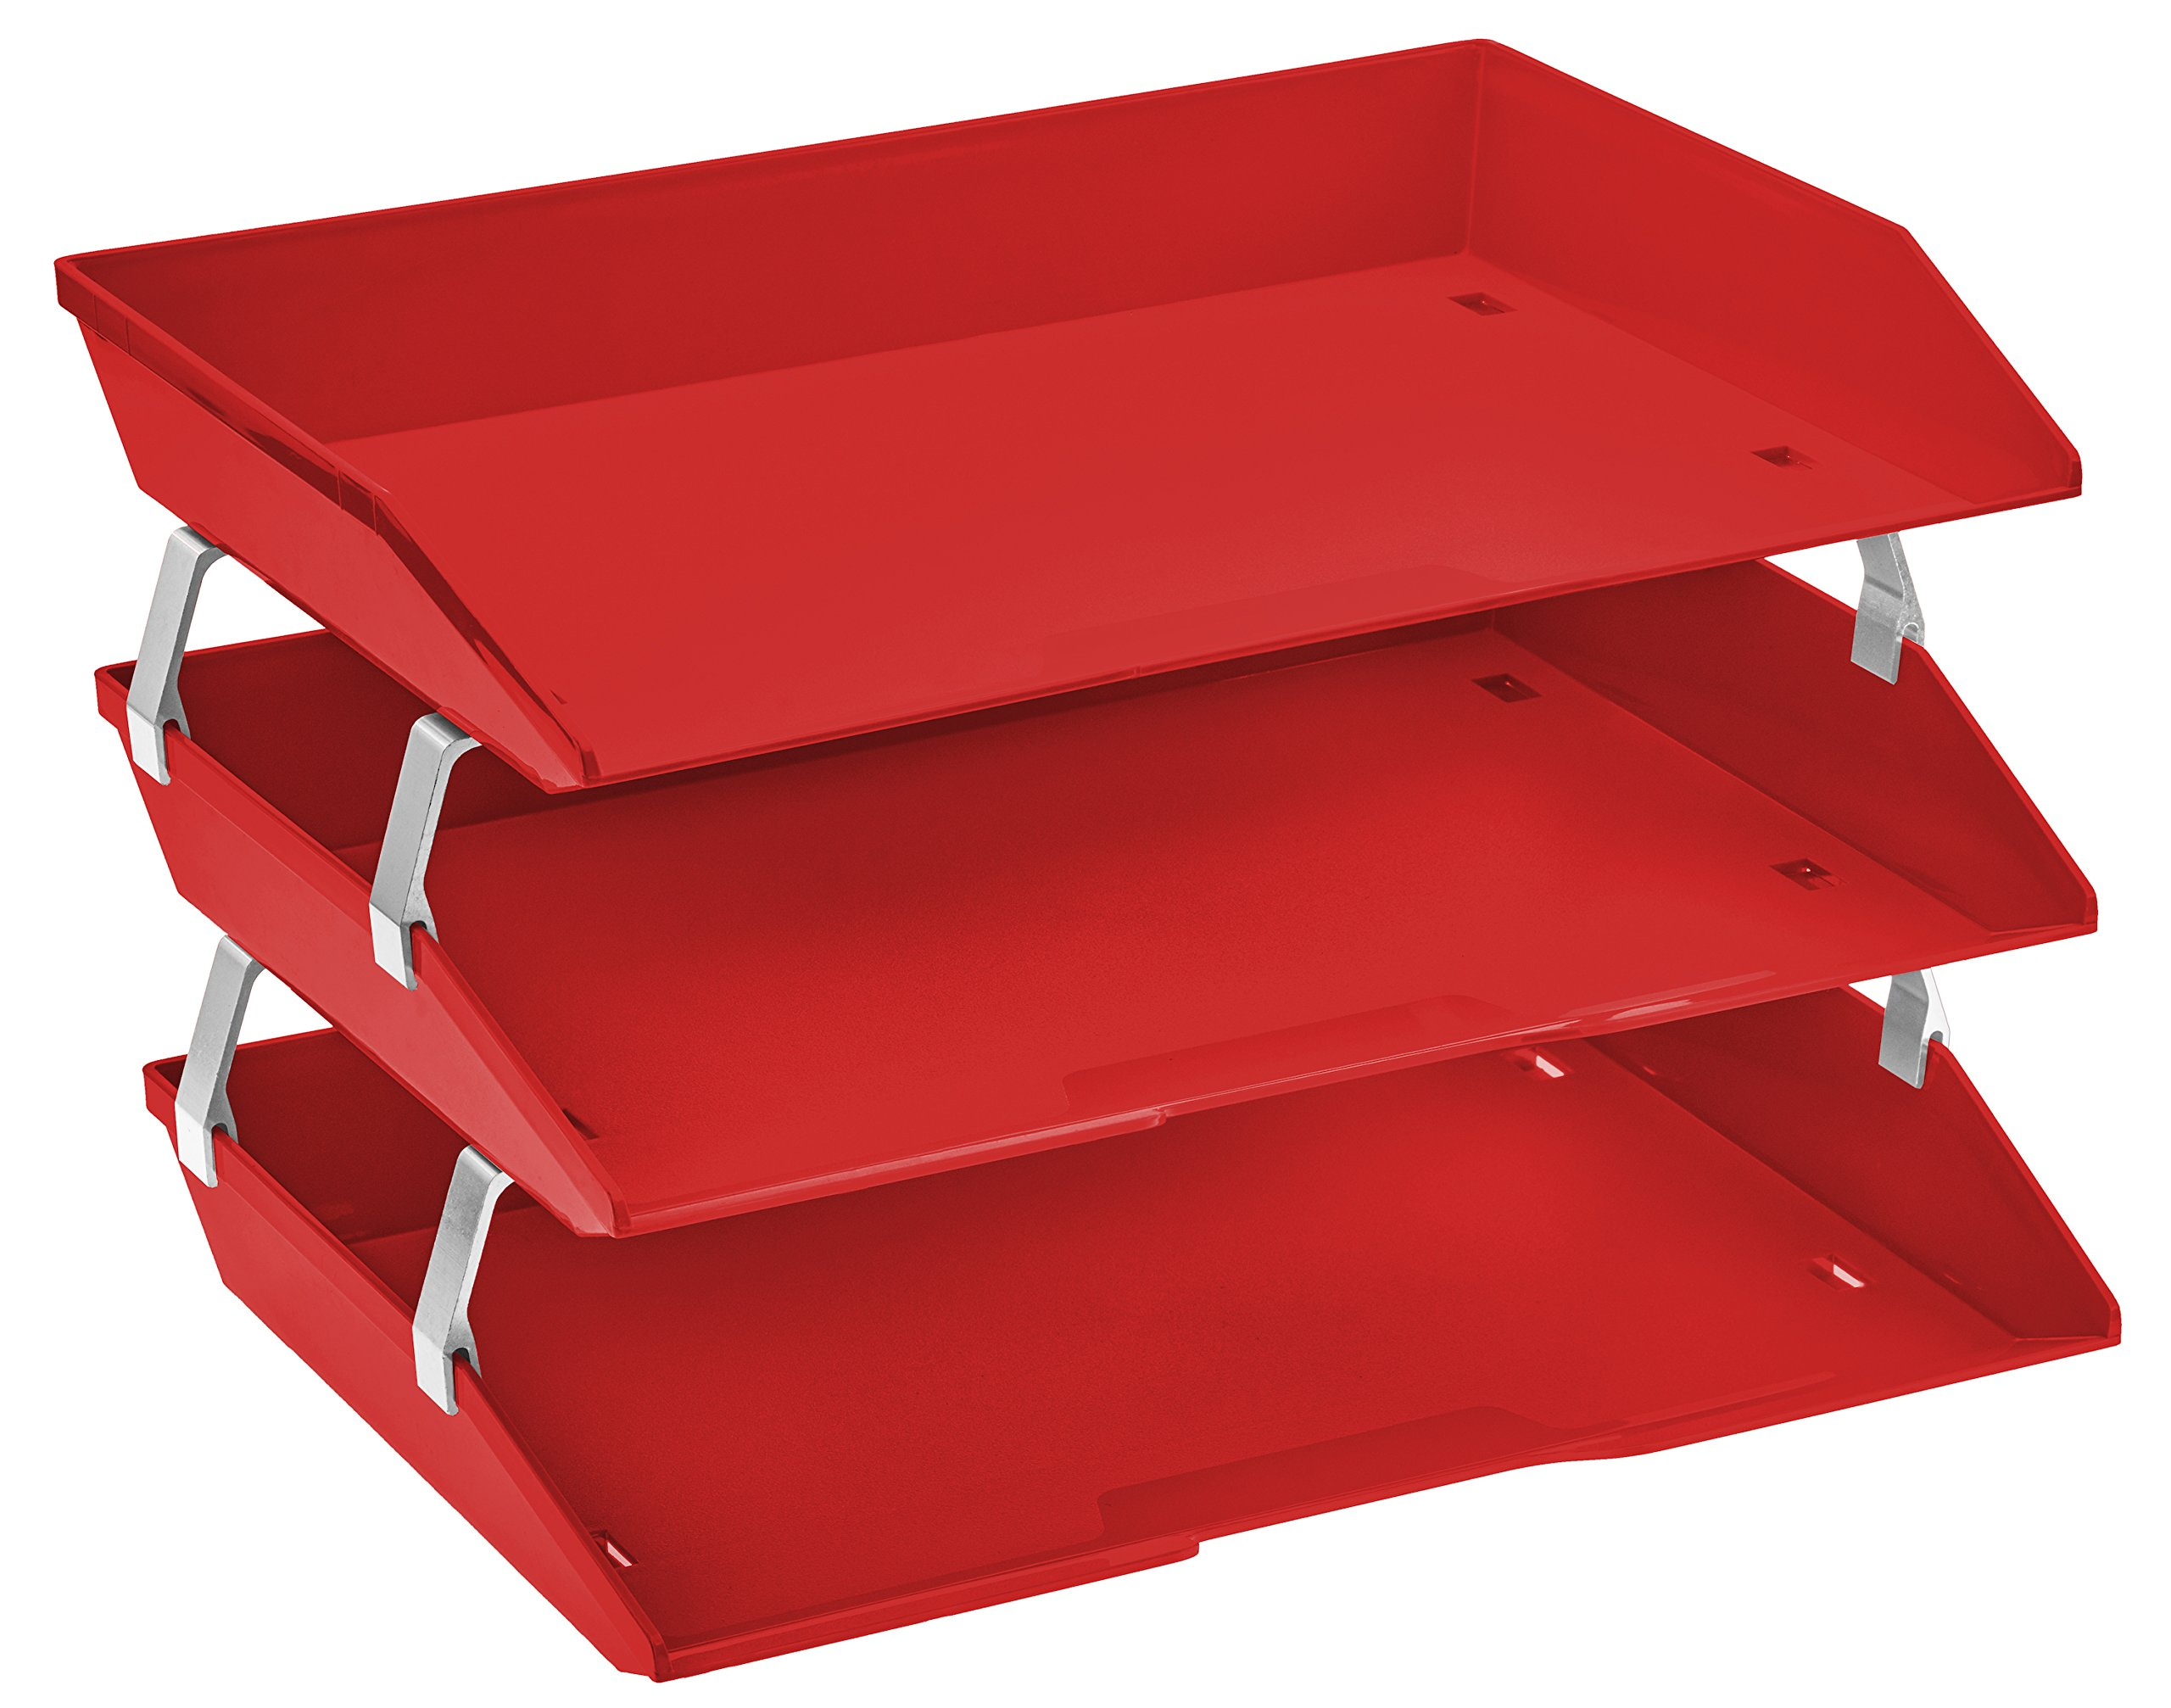 Acrimet Facility 3 Tiers Triple Letter Tray (Solid Red Color)